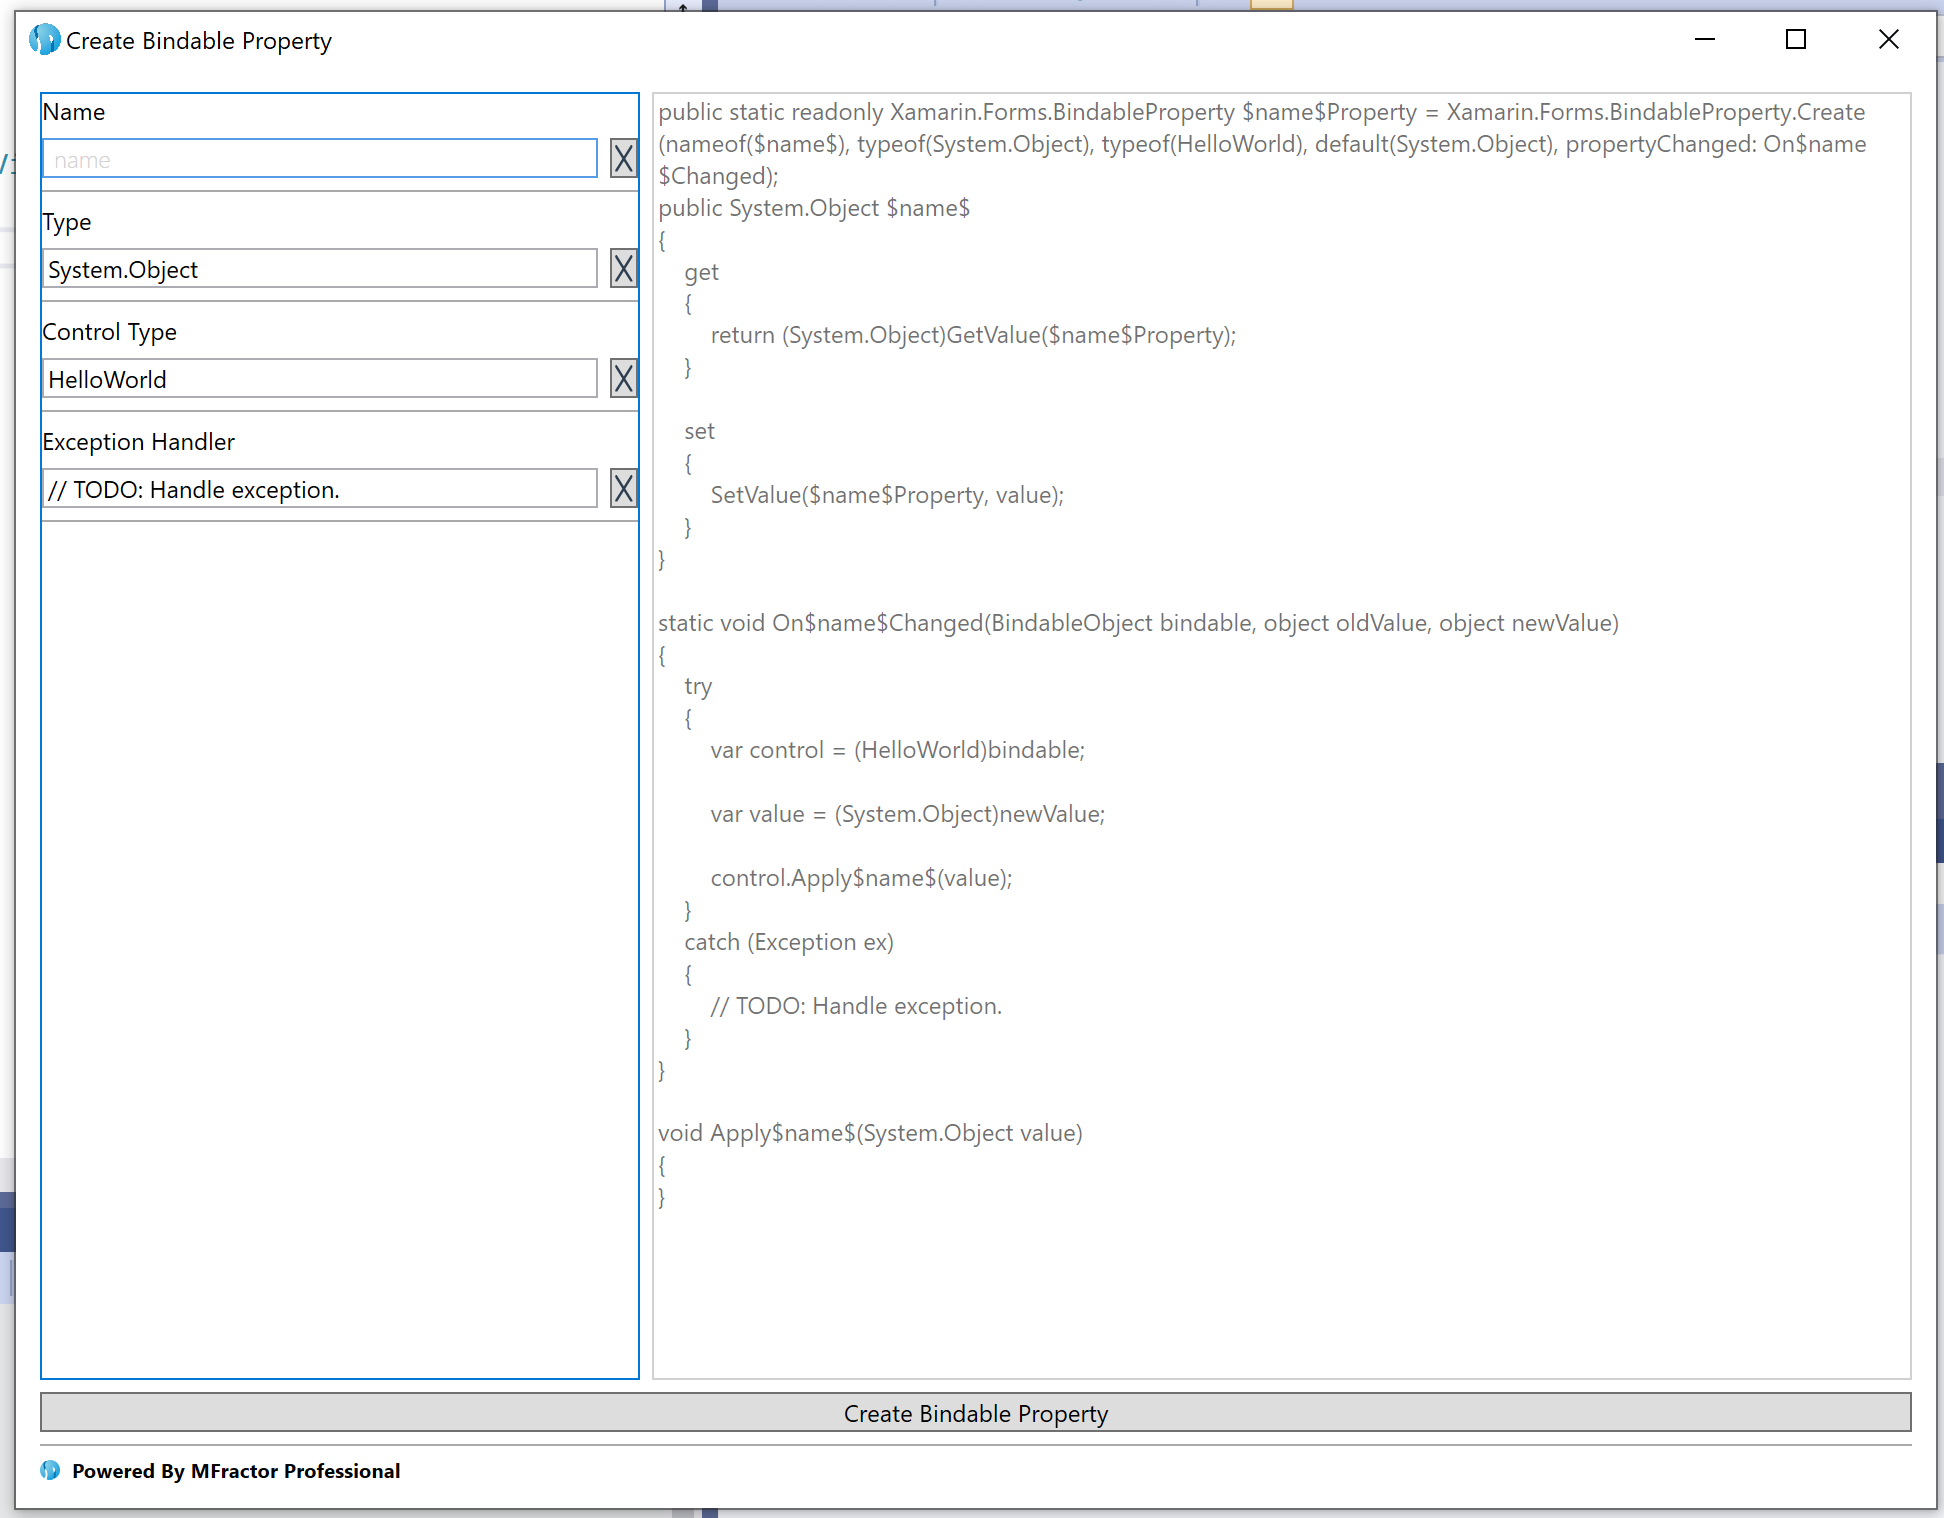 The bindable property wizard in Visual Studio Windows